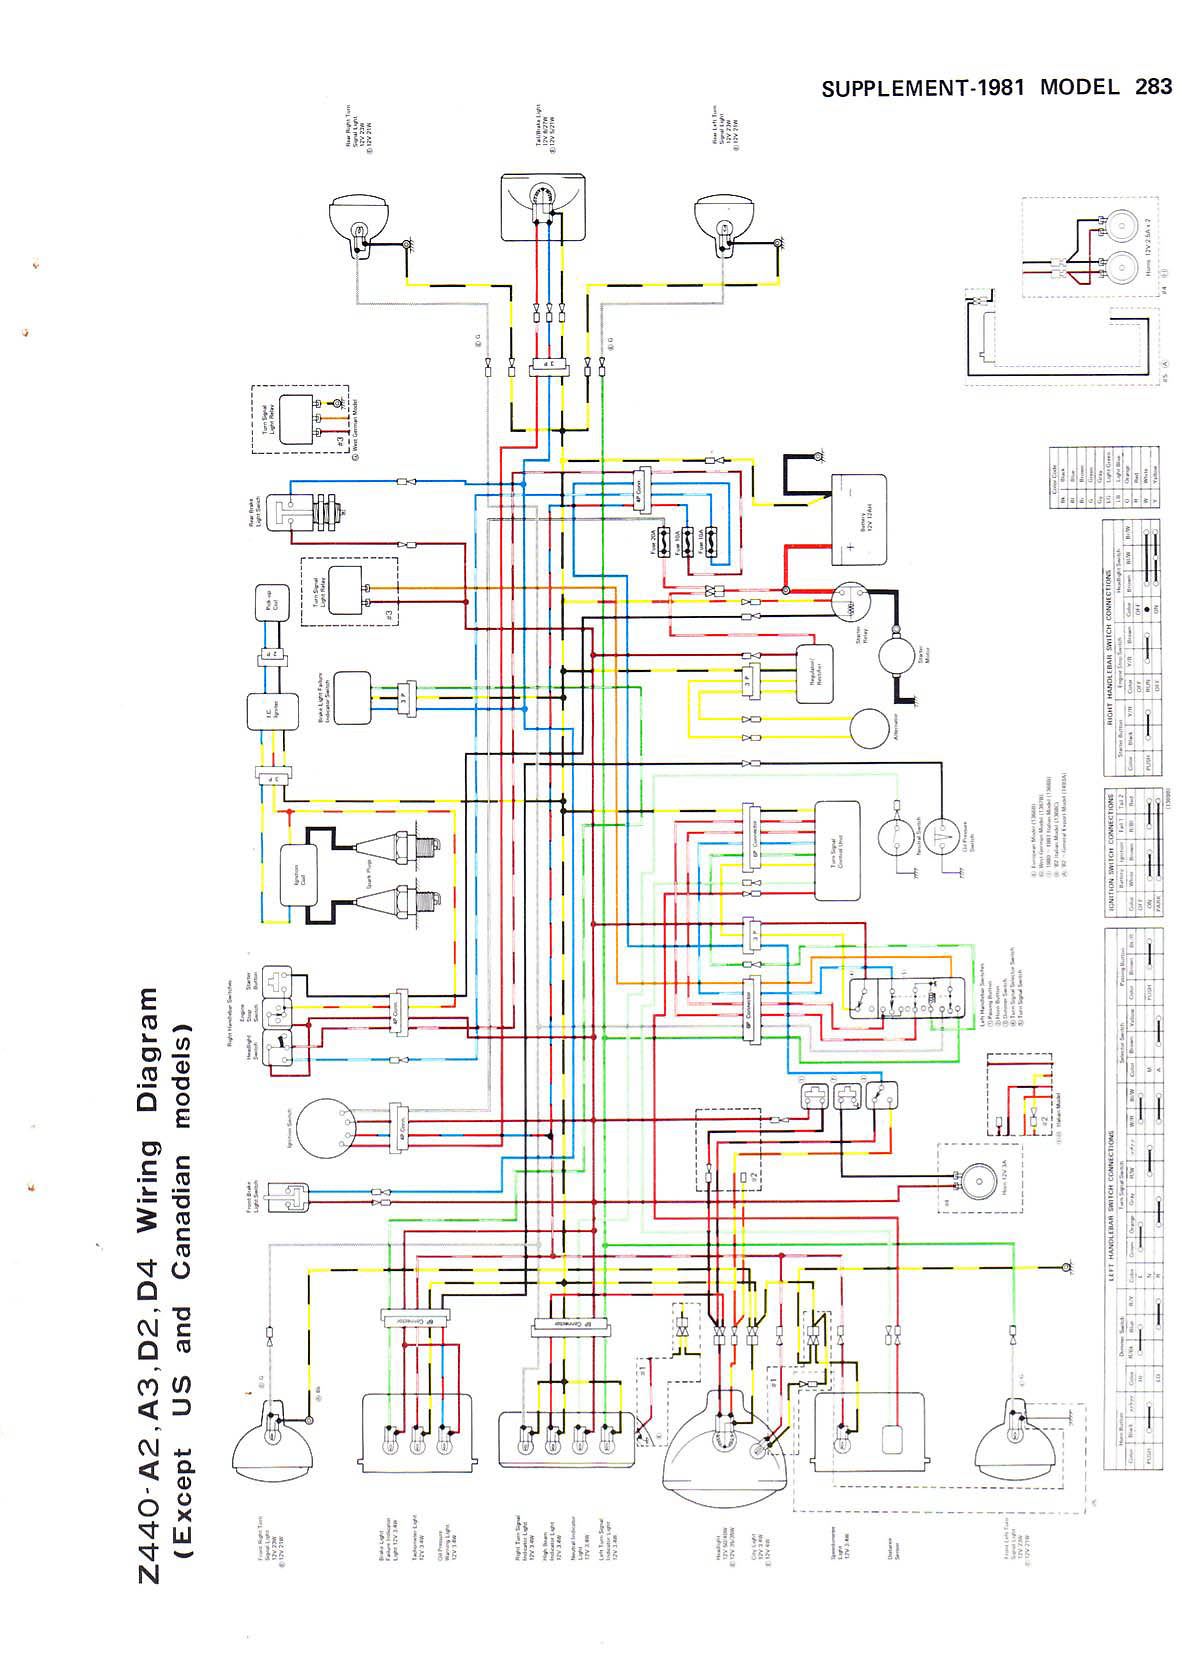 Kawasaki KZ 440 %2780 a %2782 Service Manual_Page_280 index of kz440 wiring diagrams 1980 kawasaki 440 ltd wiring diagram at bakdesigns.co